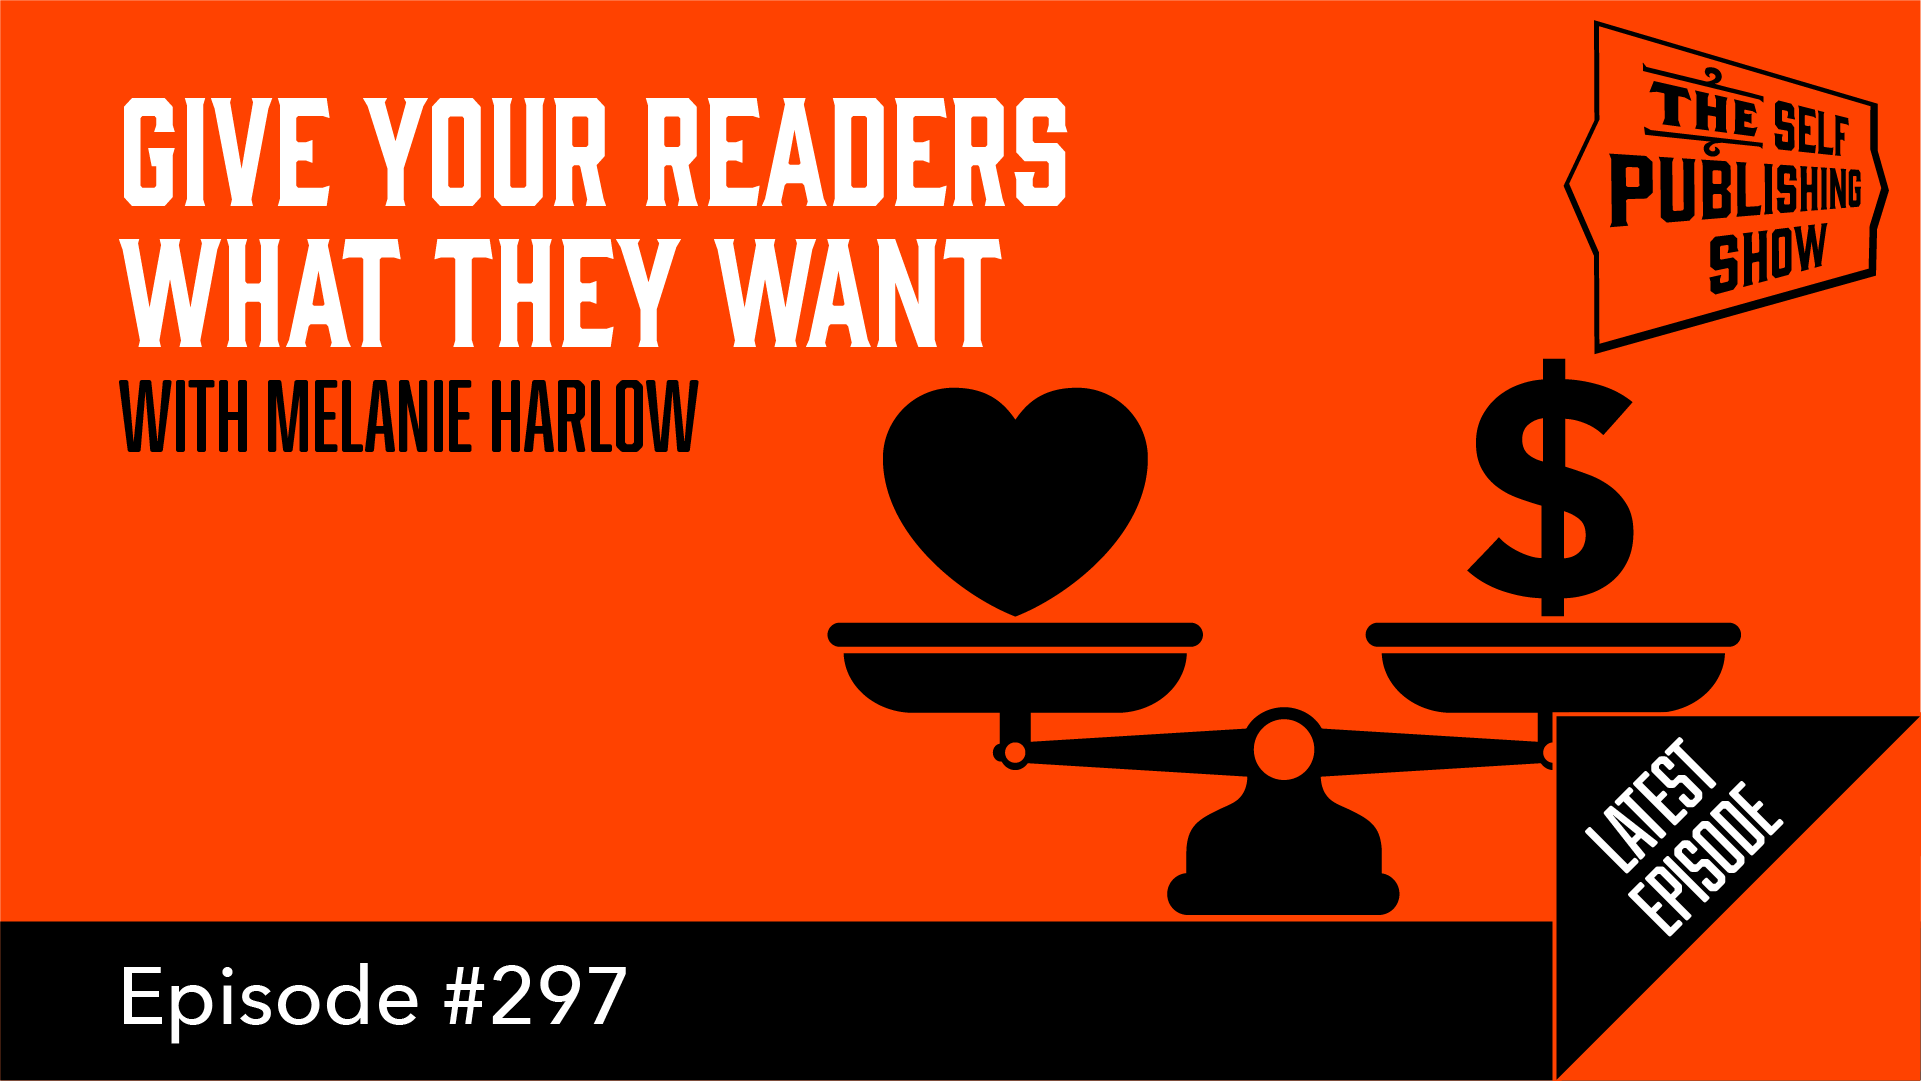 SPS-297: Give Your Readers What They Want - with Melanie Harlow